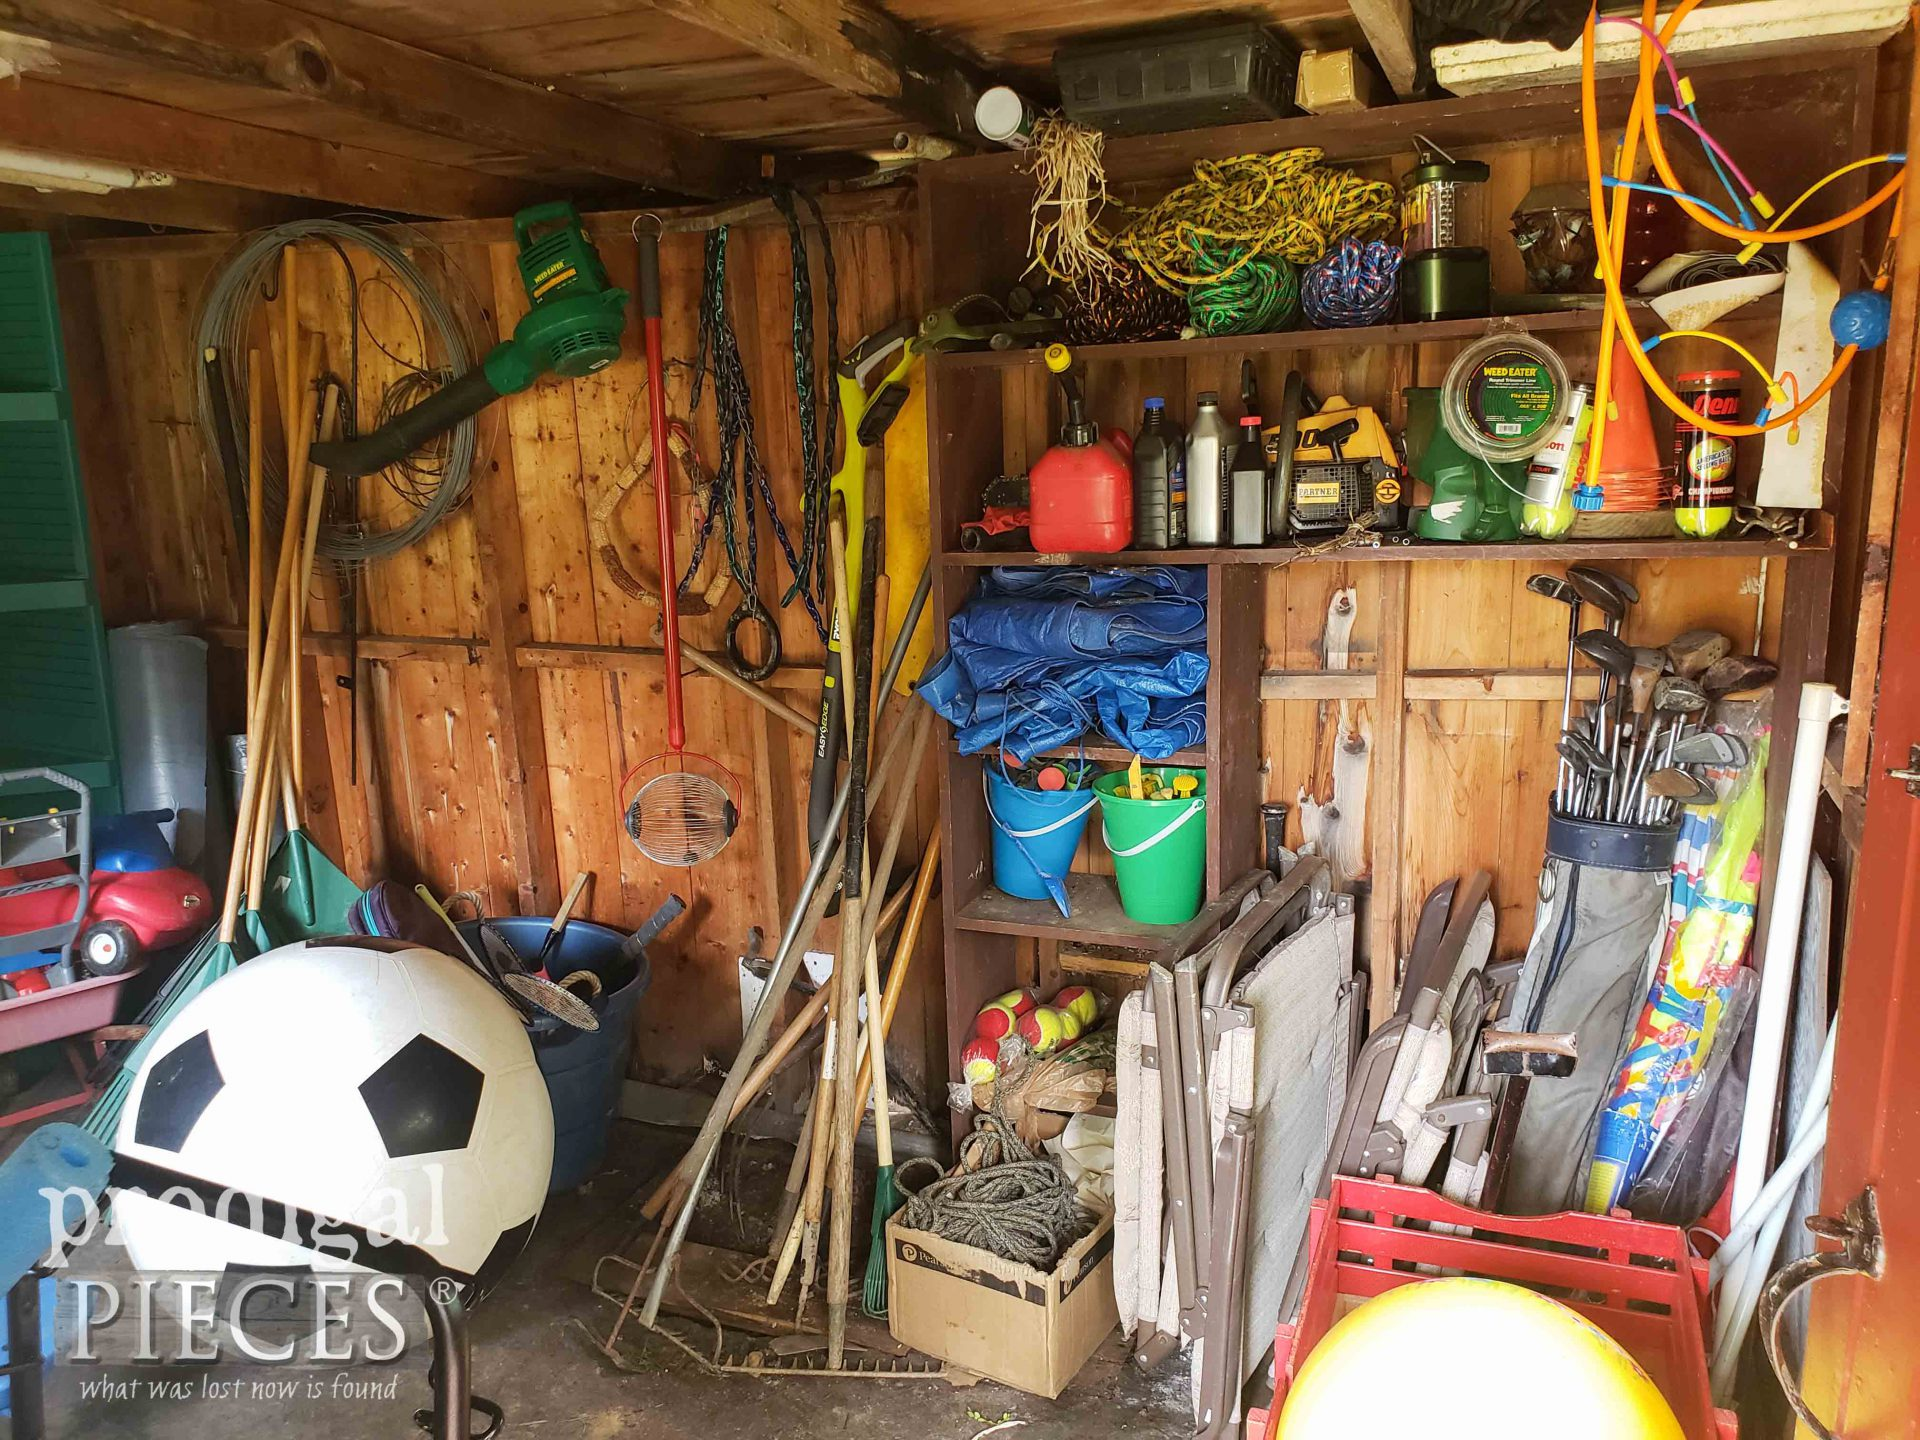 Garden Shed Remodel Mess Before | prodigalpieces.com